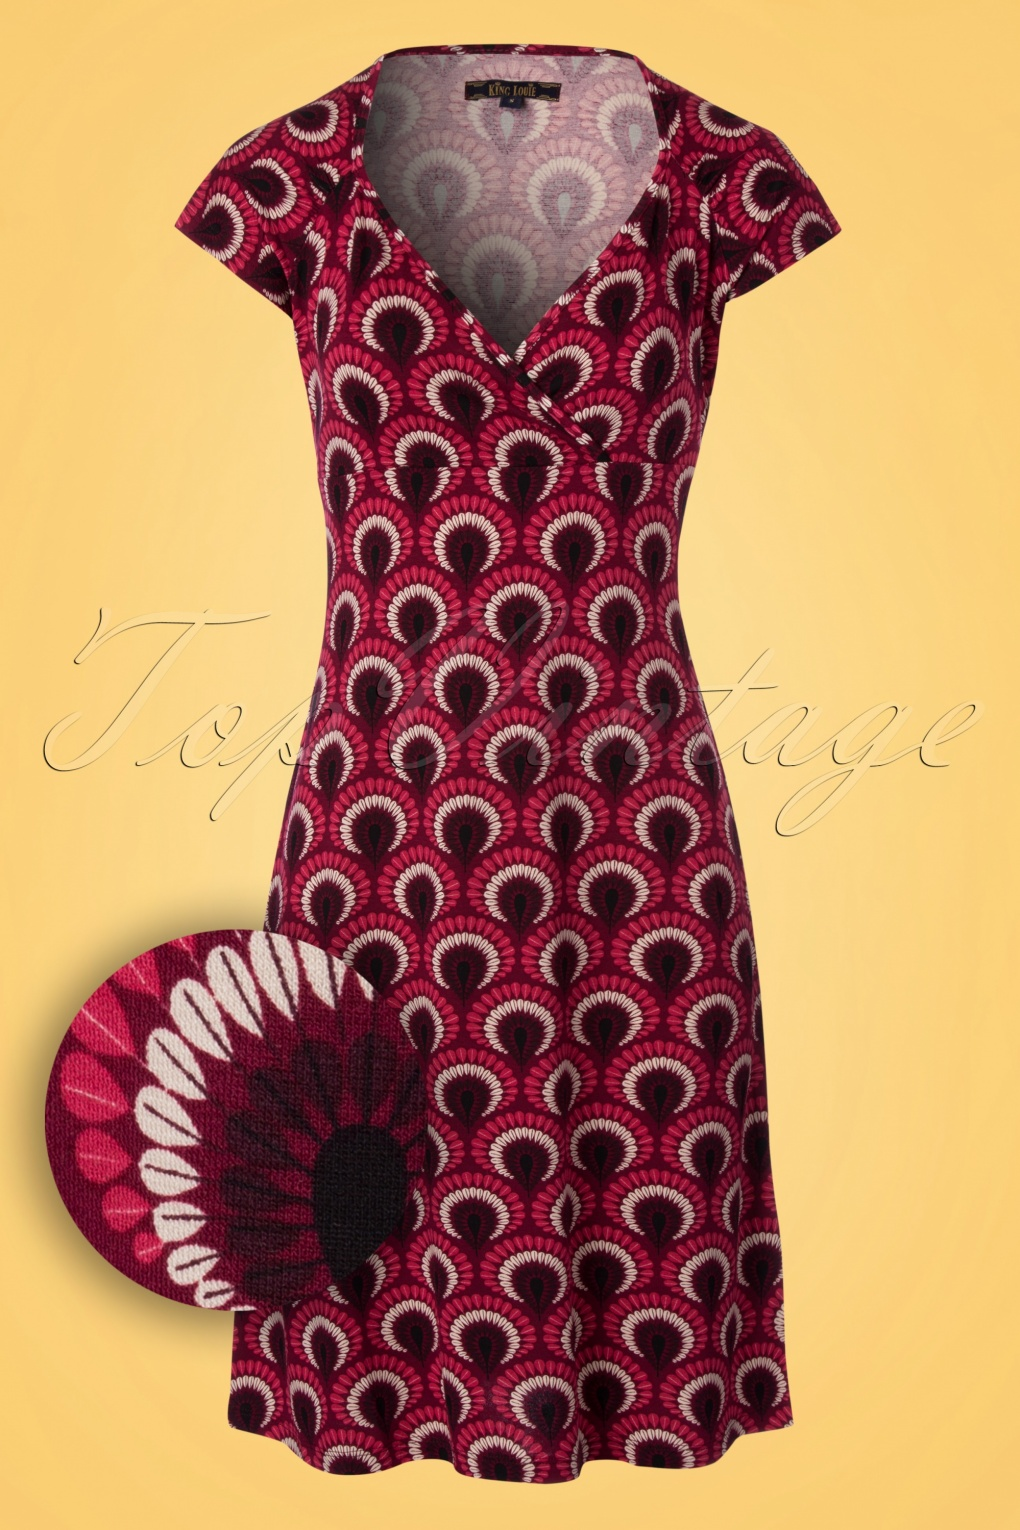 1960s Mad Men Dresses and Clothing Styles 60s Gina Peacock Dress in Beaujolais Red £84.10 AT vintagedancer.com